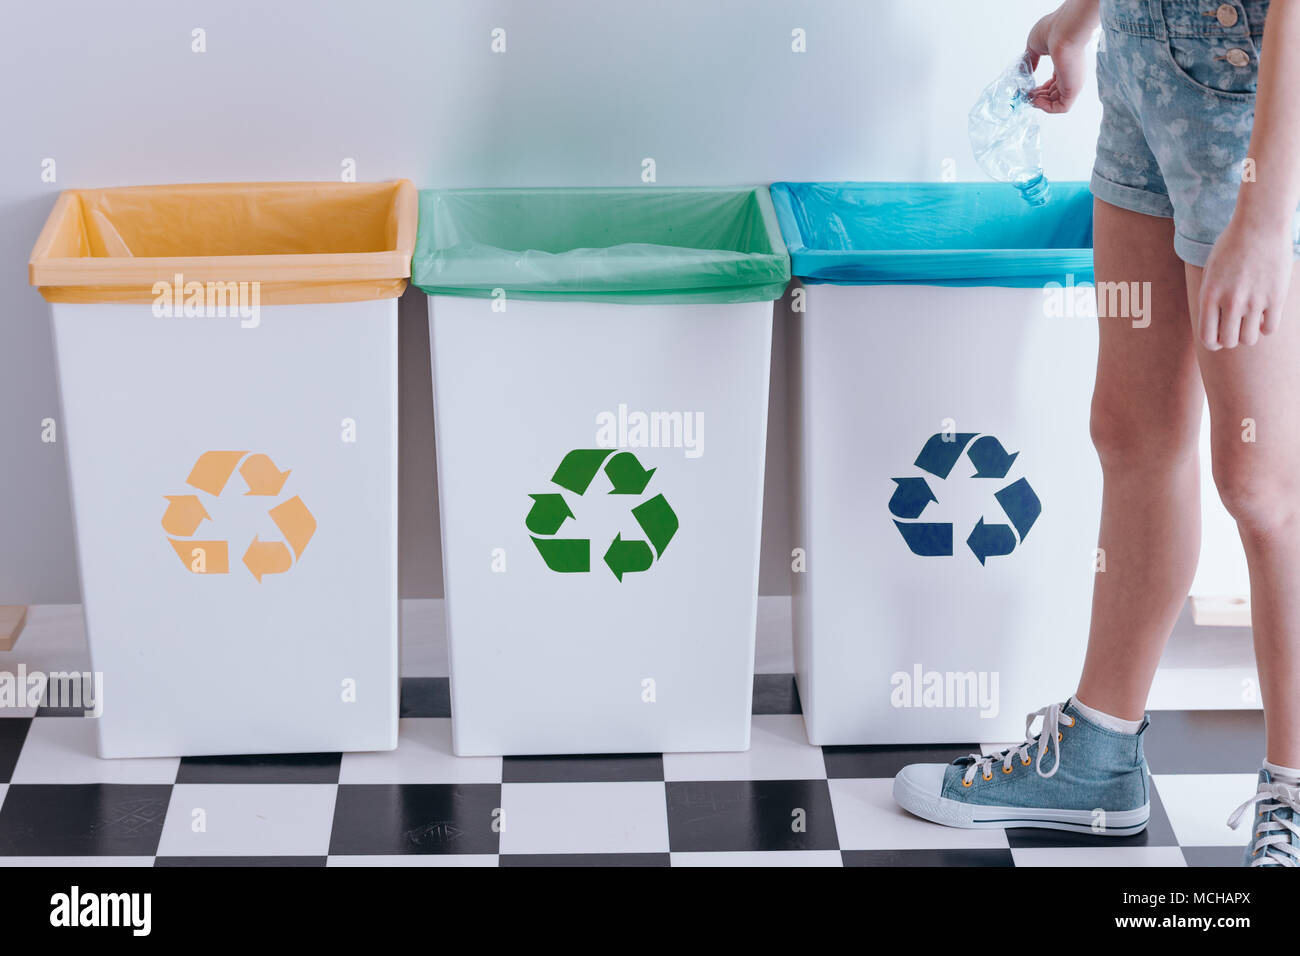 Kid throwing out a plastic bottle into a blue bin. Child recycling education concept - Stock Image